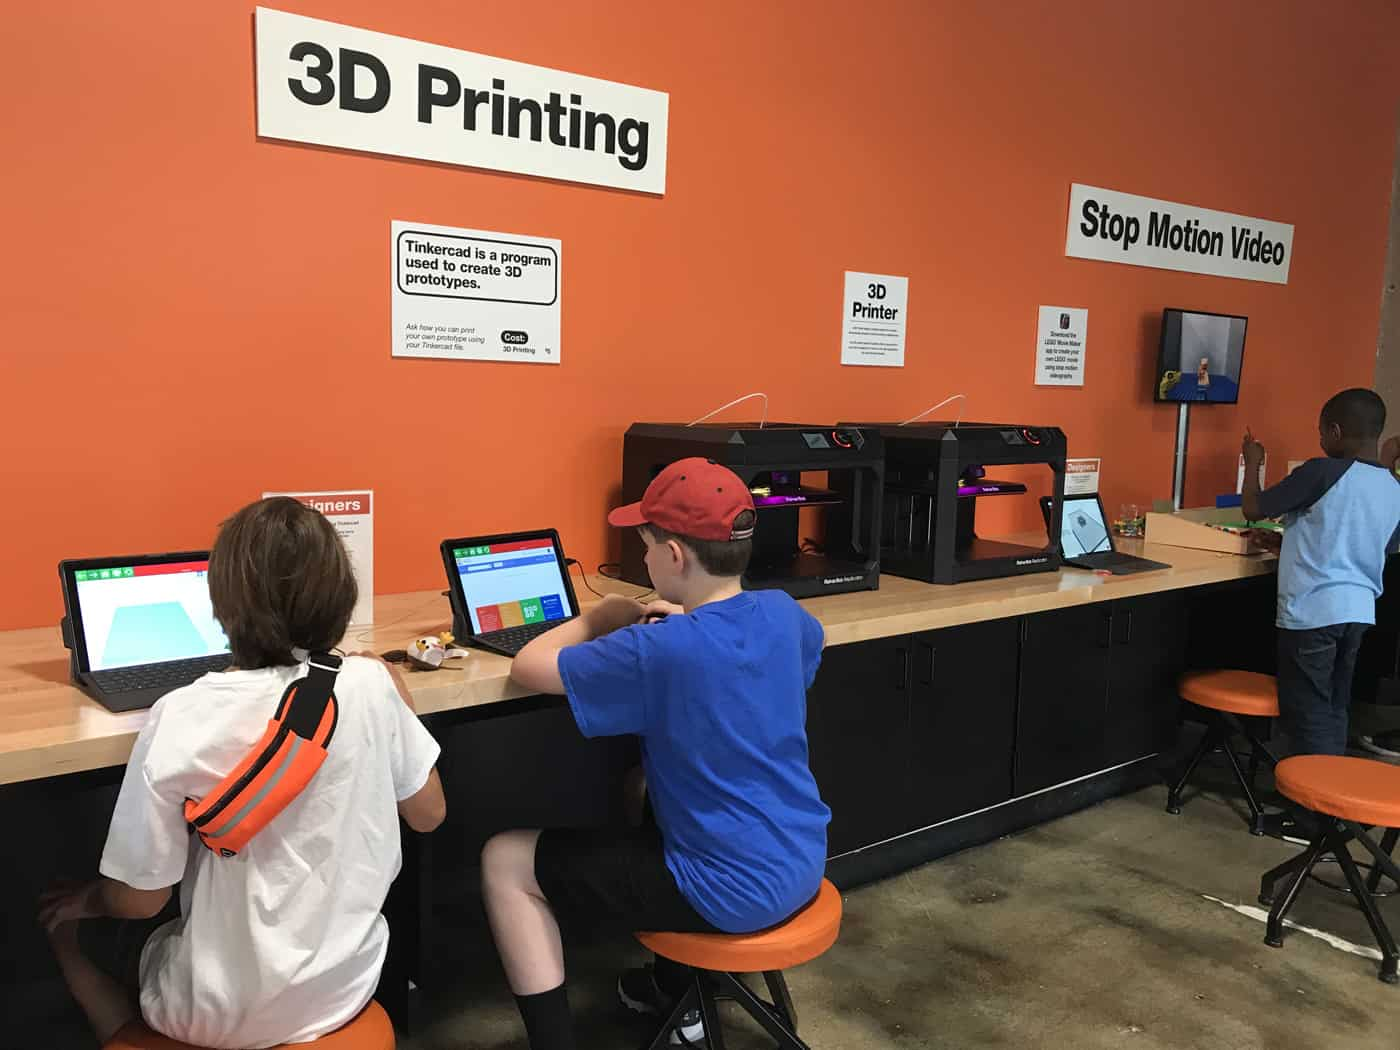 kids working on computers by the 3D printer